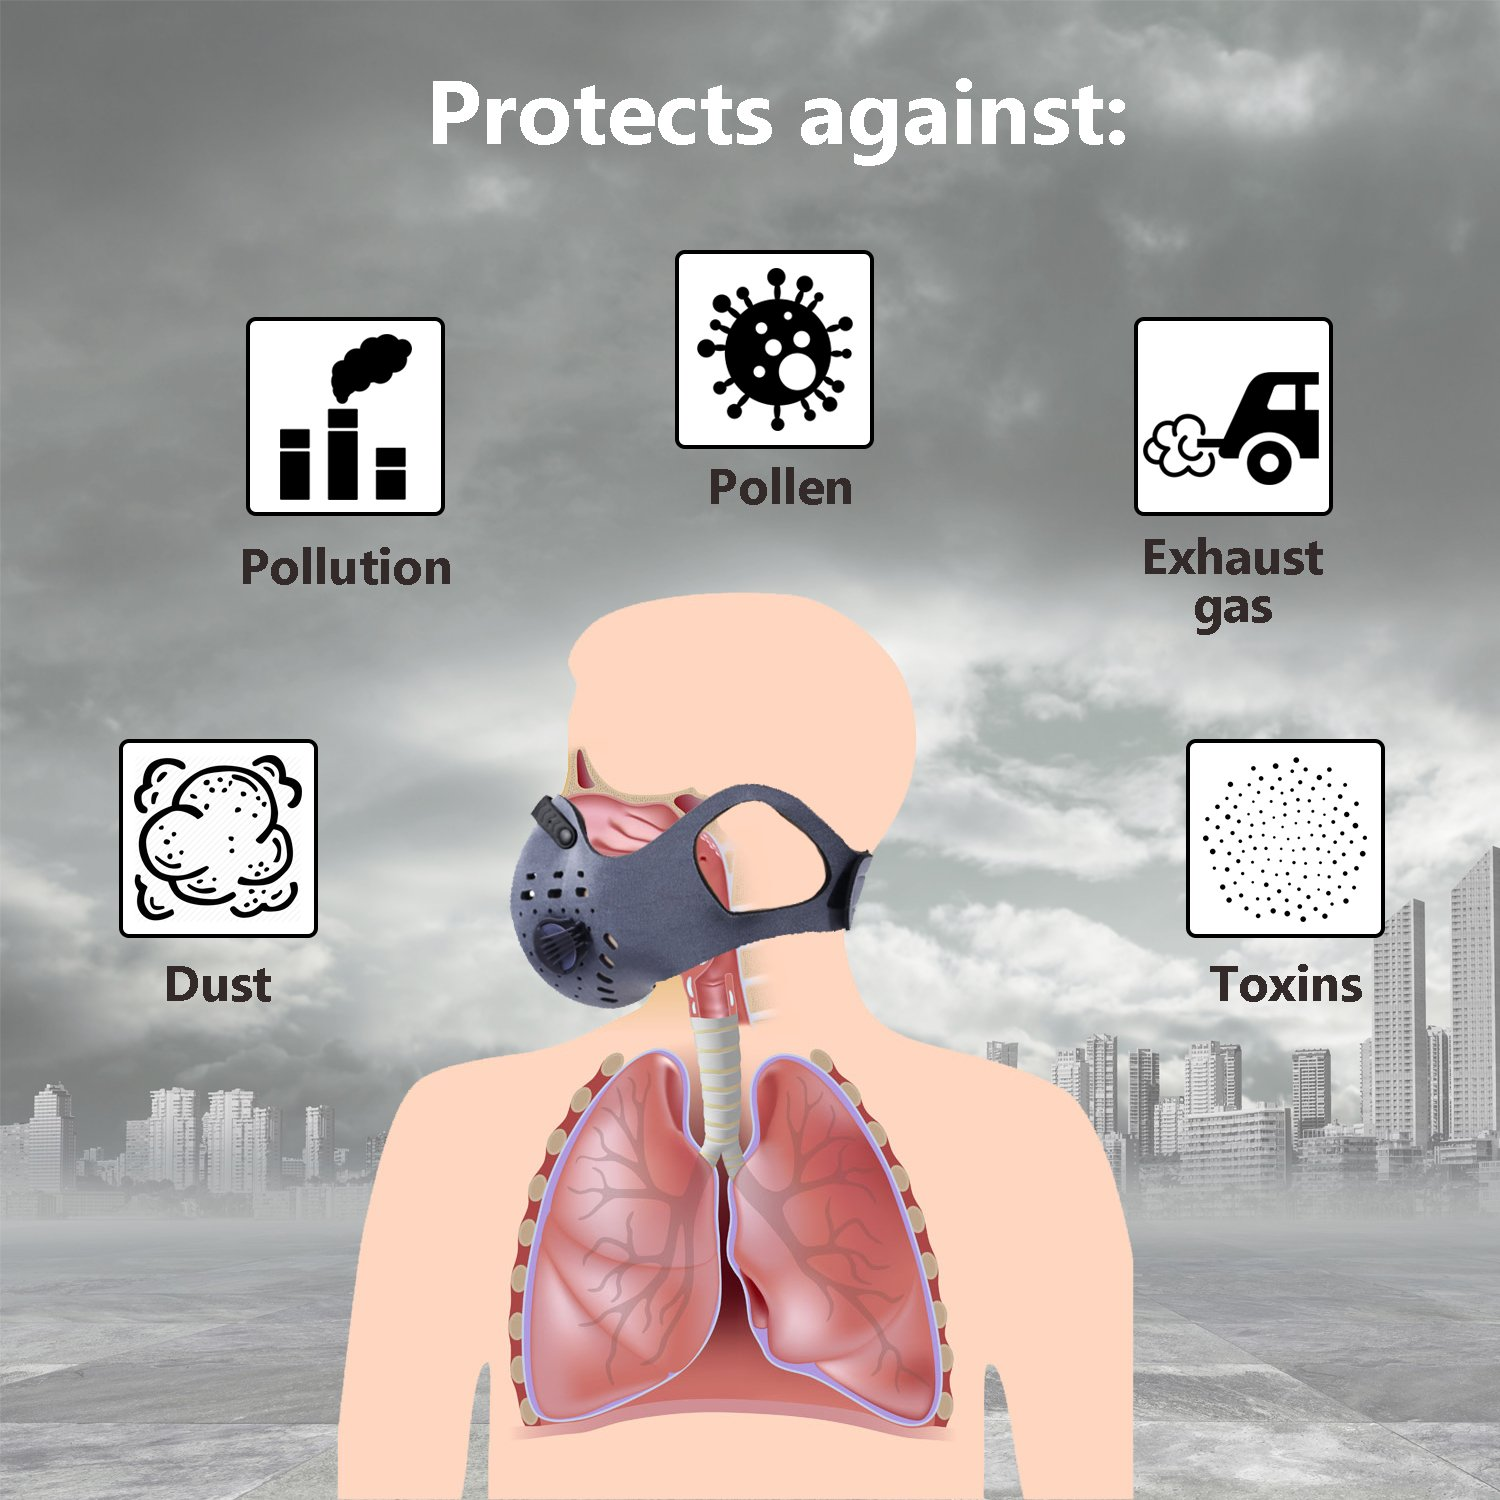 Activated Carbon Dust Mask for Breathing Clean Air, with Extra Filters, Excellent for Cycling, Running, No more Exhaust Gas, Dustproof, Anti Allergy and Pollution, PM2.5 N99, Outdoor Activities (Camo) by AirShielz (Image #7)